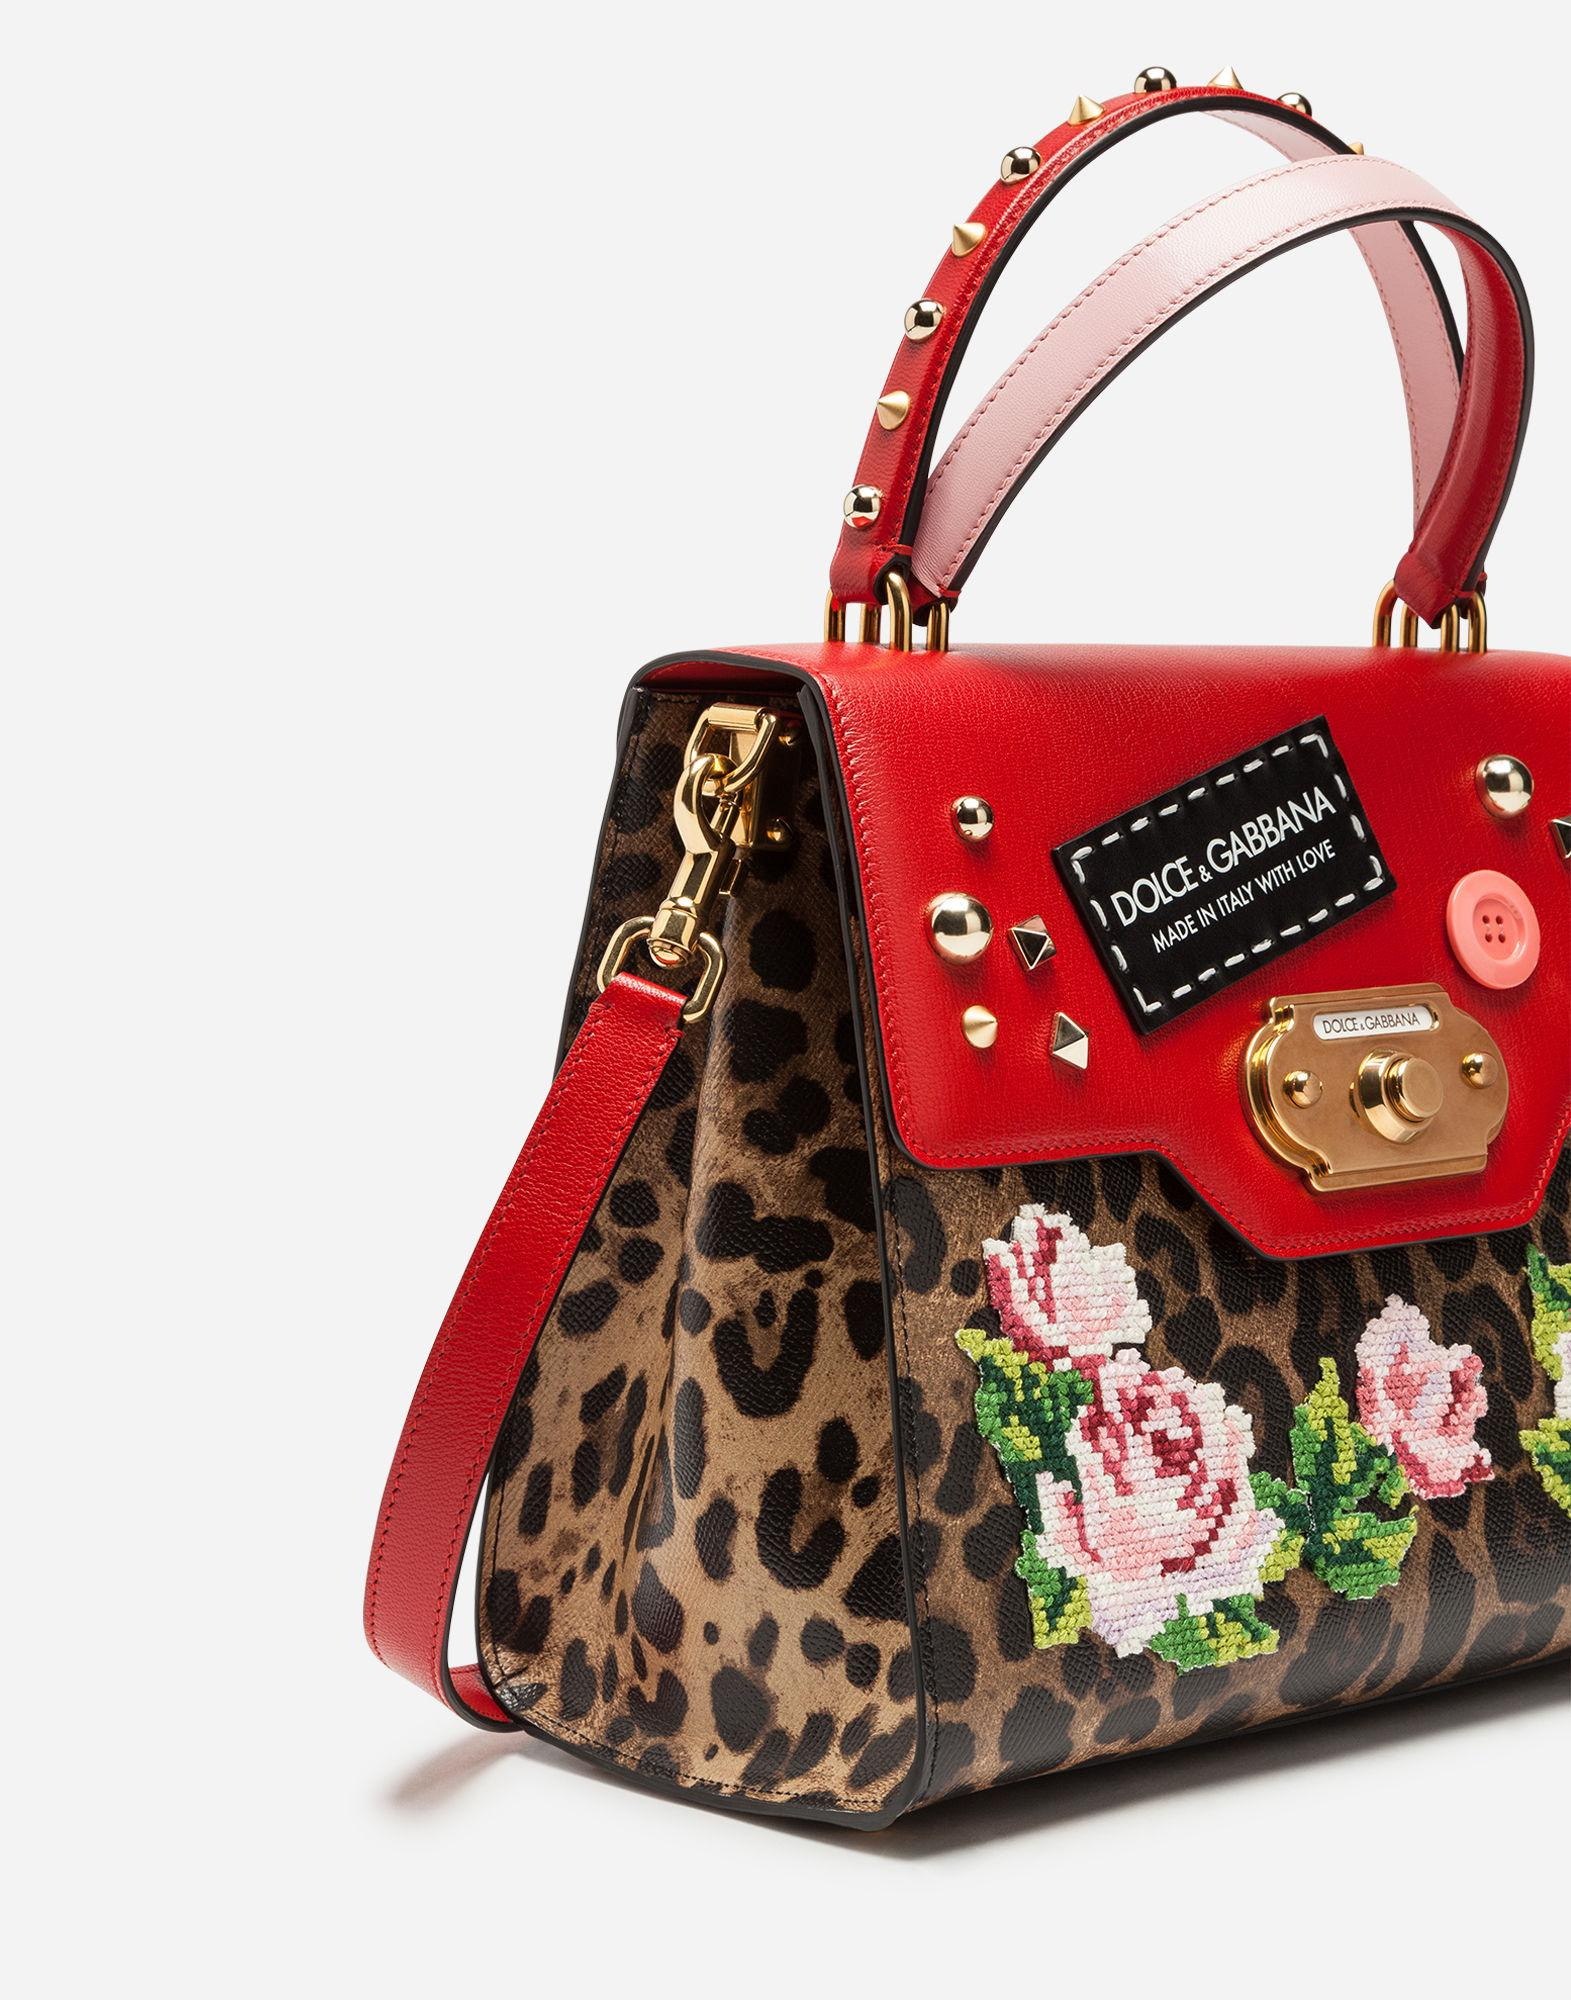 Lyst Dolce Gabbana Welcome Bag Handbag In Two Materials With Embroidery Red